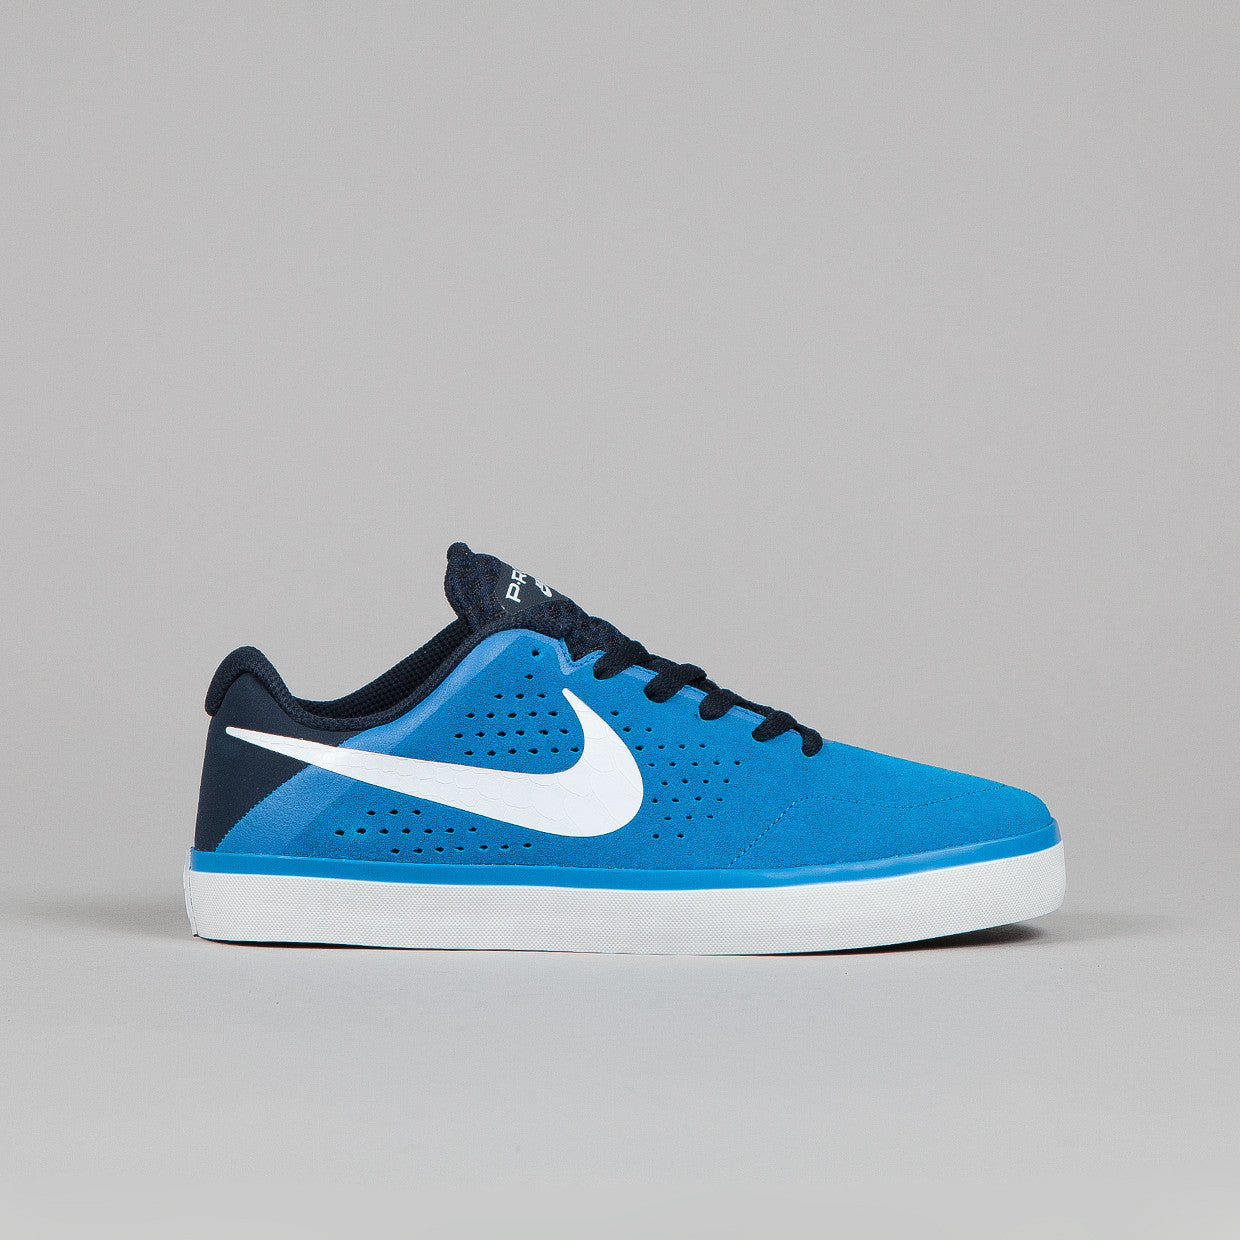 Nike Sb Paul Rodriguez CTD LR Photo Blue / White